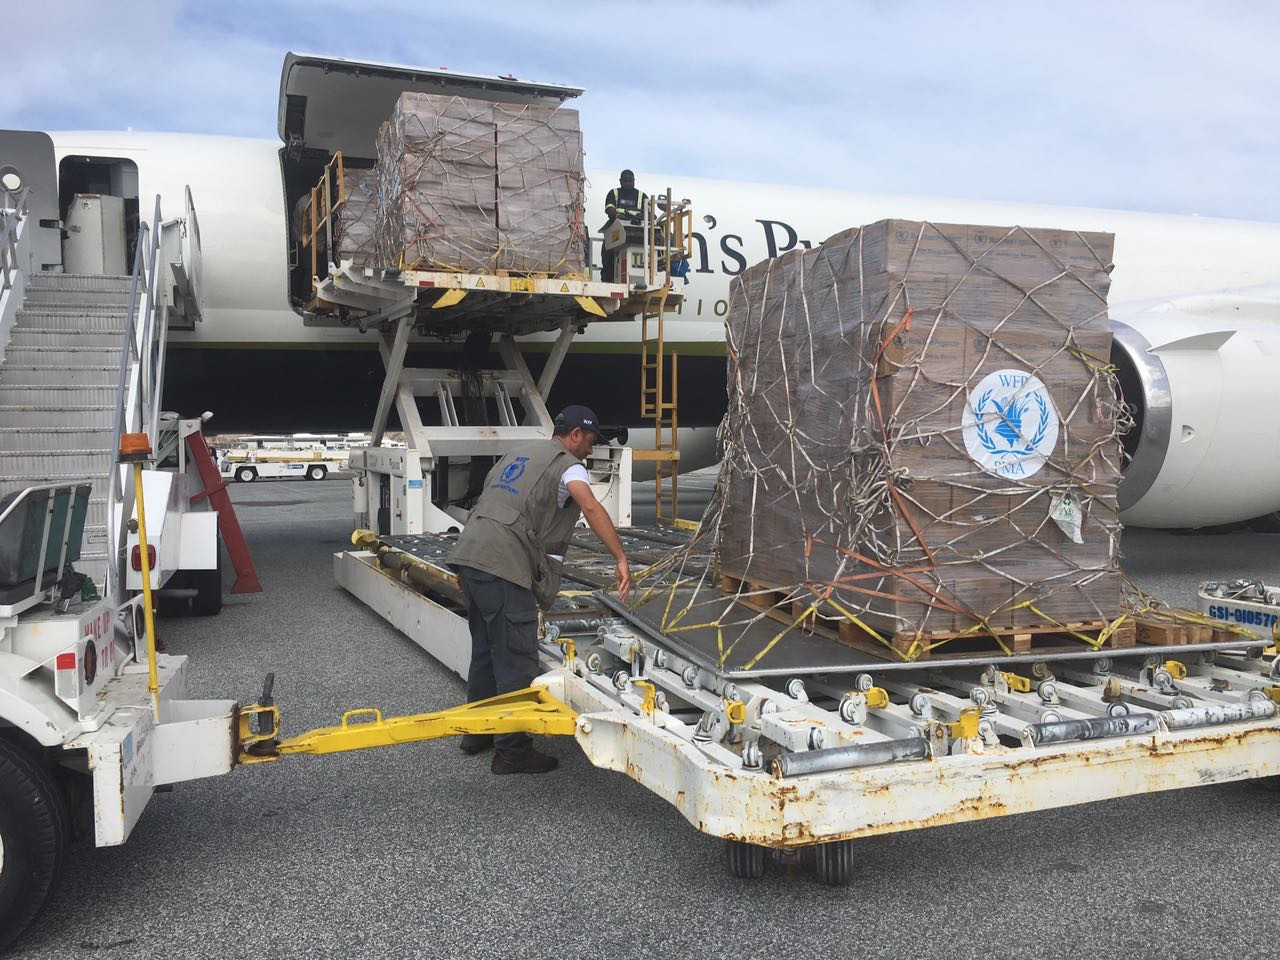 A man stands over a shipment of WFP boxes that are being hauled out of an airplane